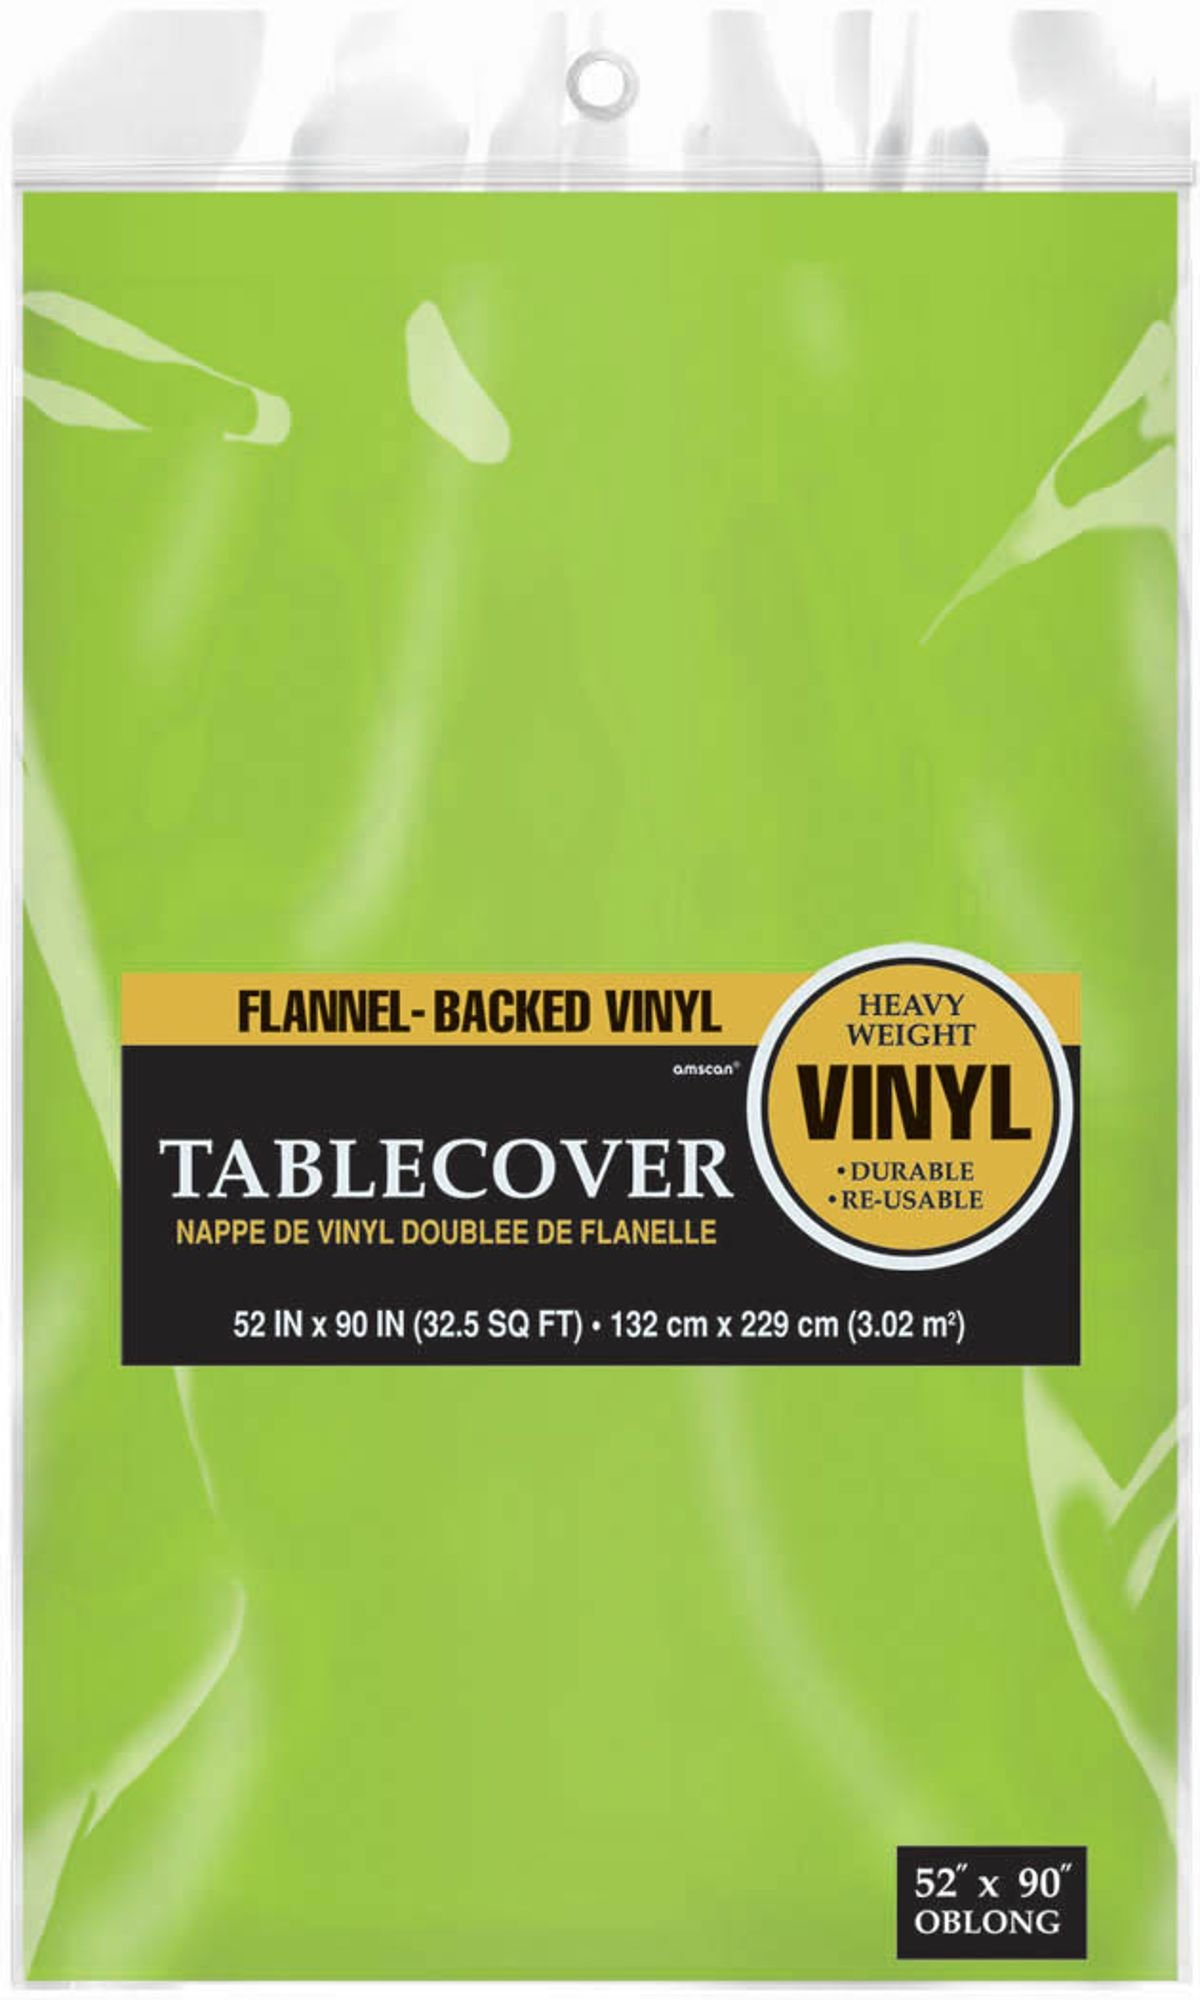 Durable Indoor / Outdoor Flannel Backed Vinyl Party Tablecover in Solid Color Tableware, Kiwi, Vinyl , 52'' x 90''